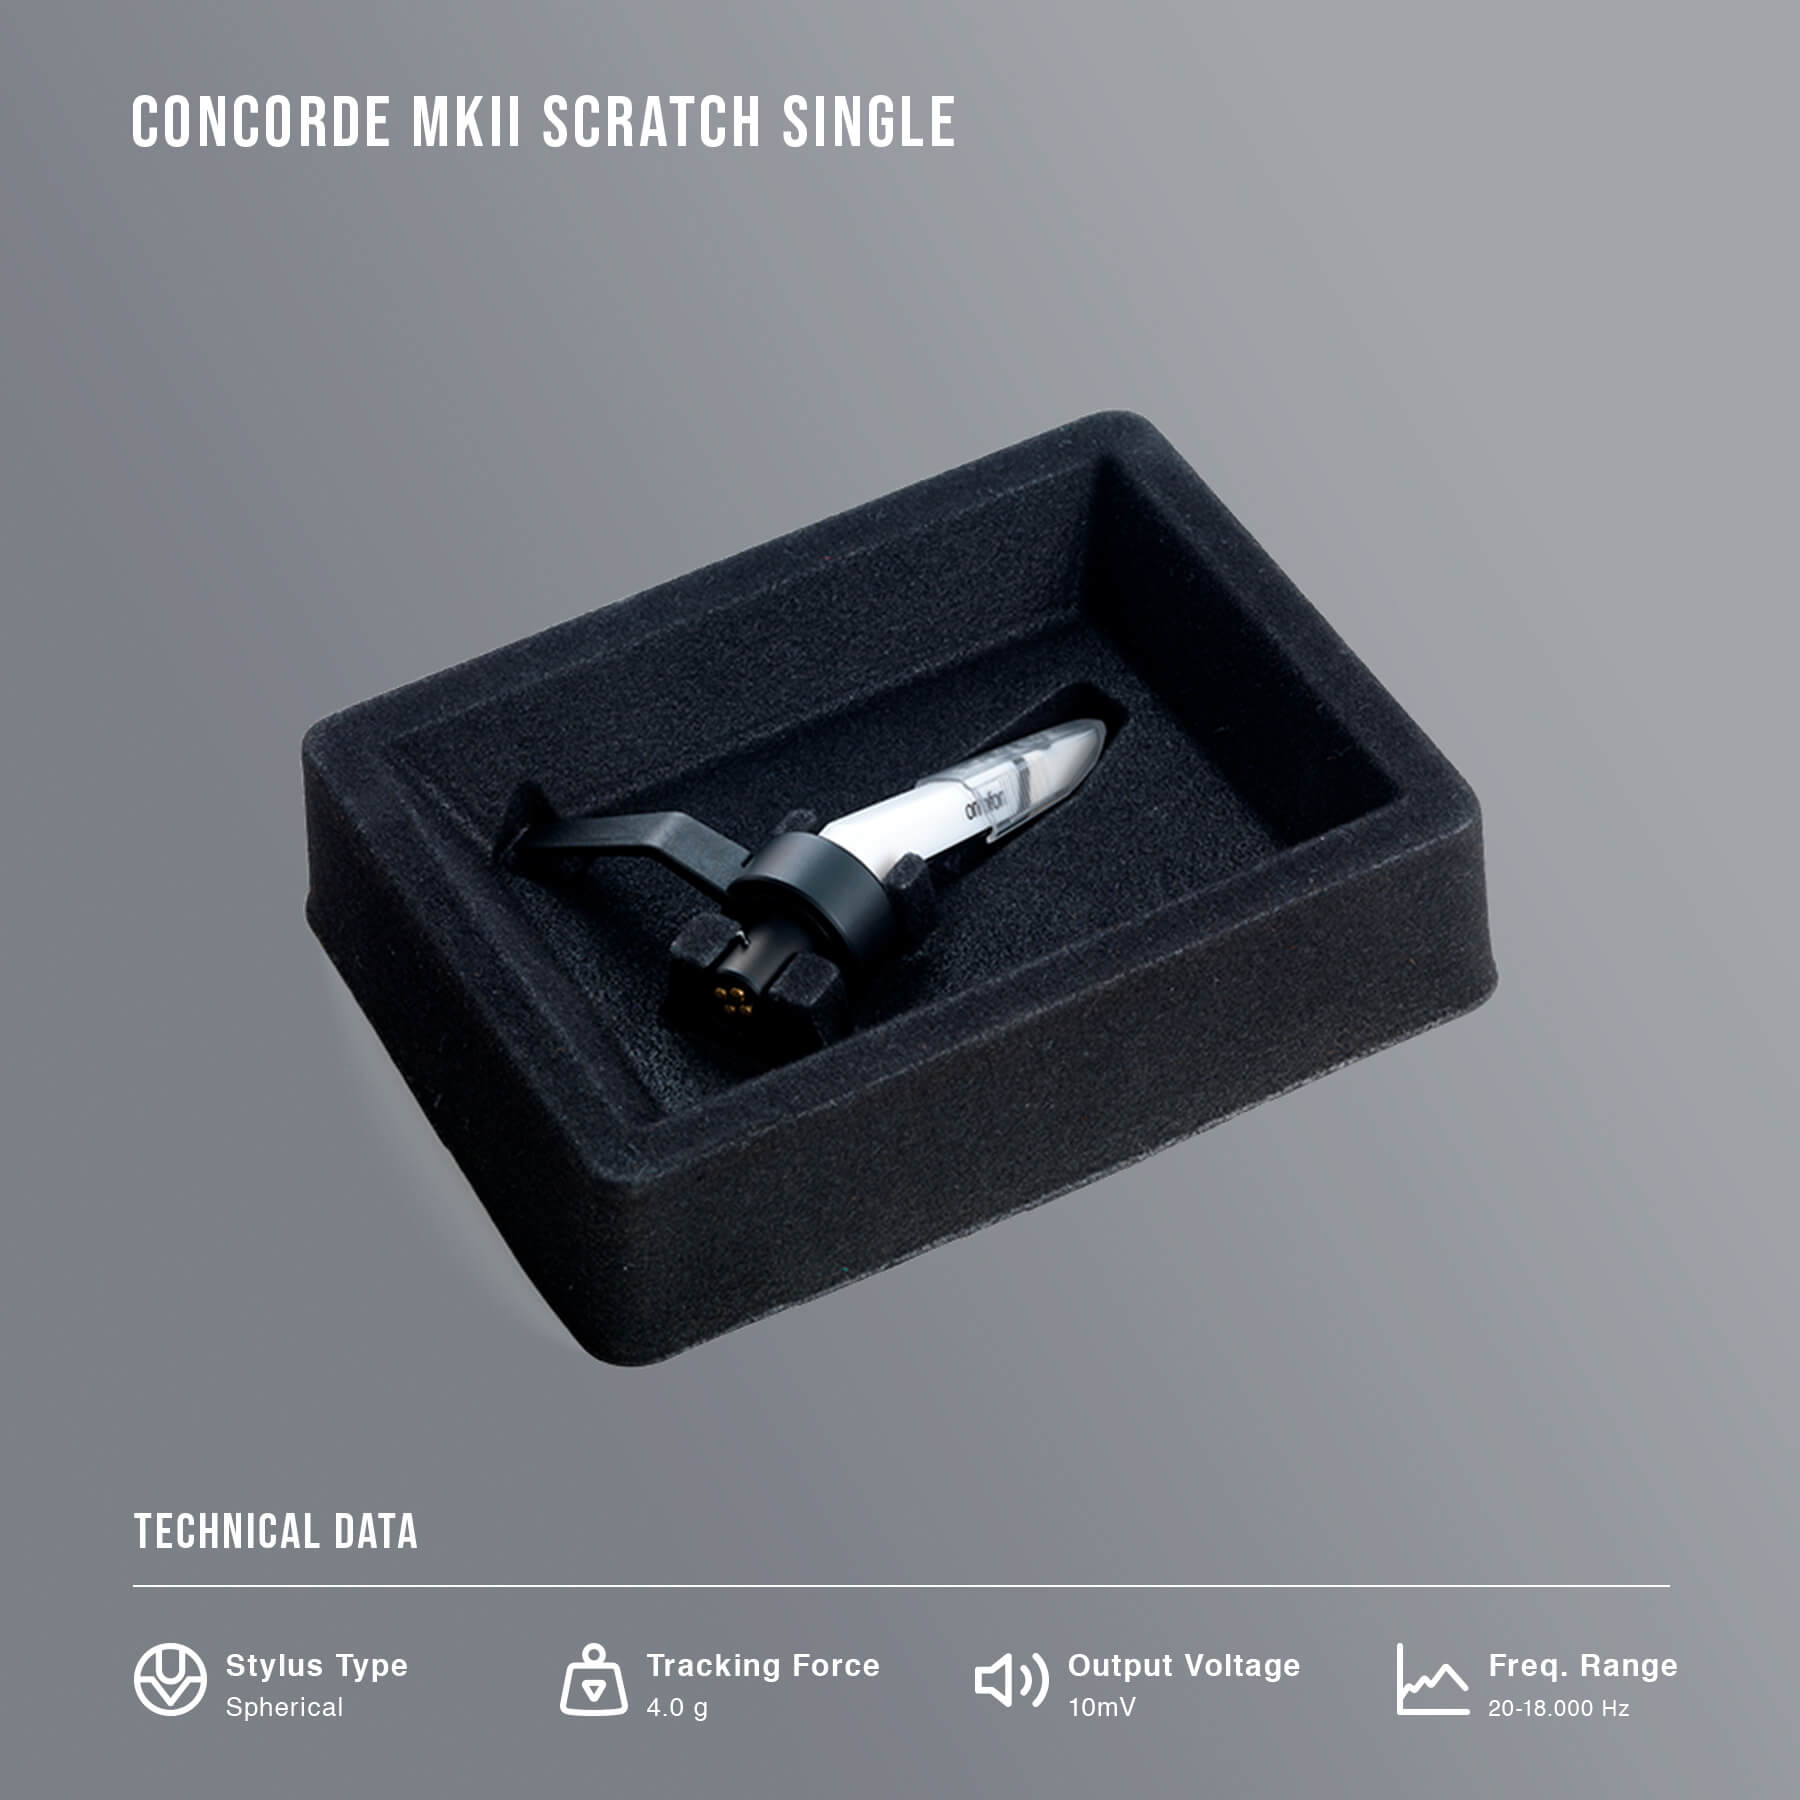 Concorde MKii Scratch Single